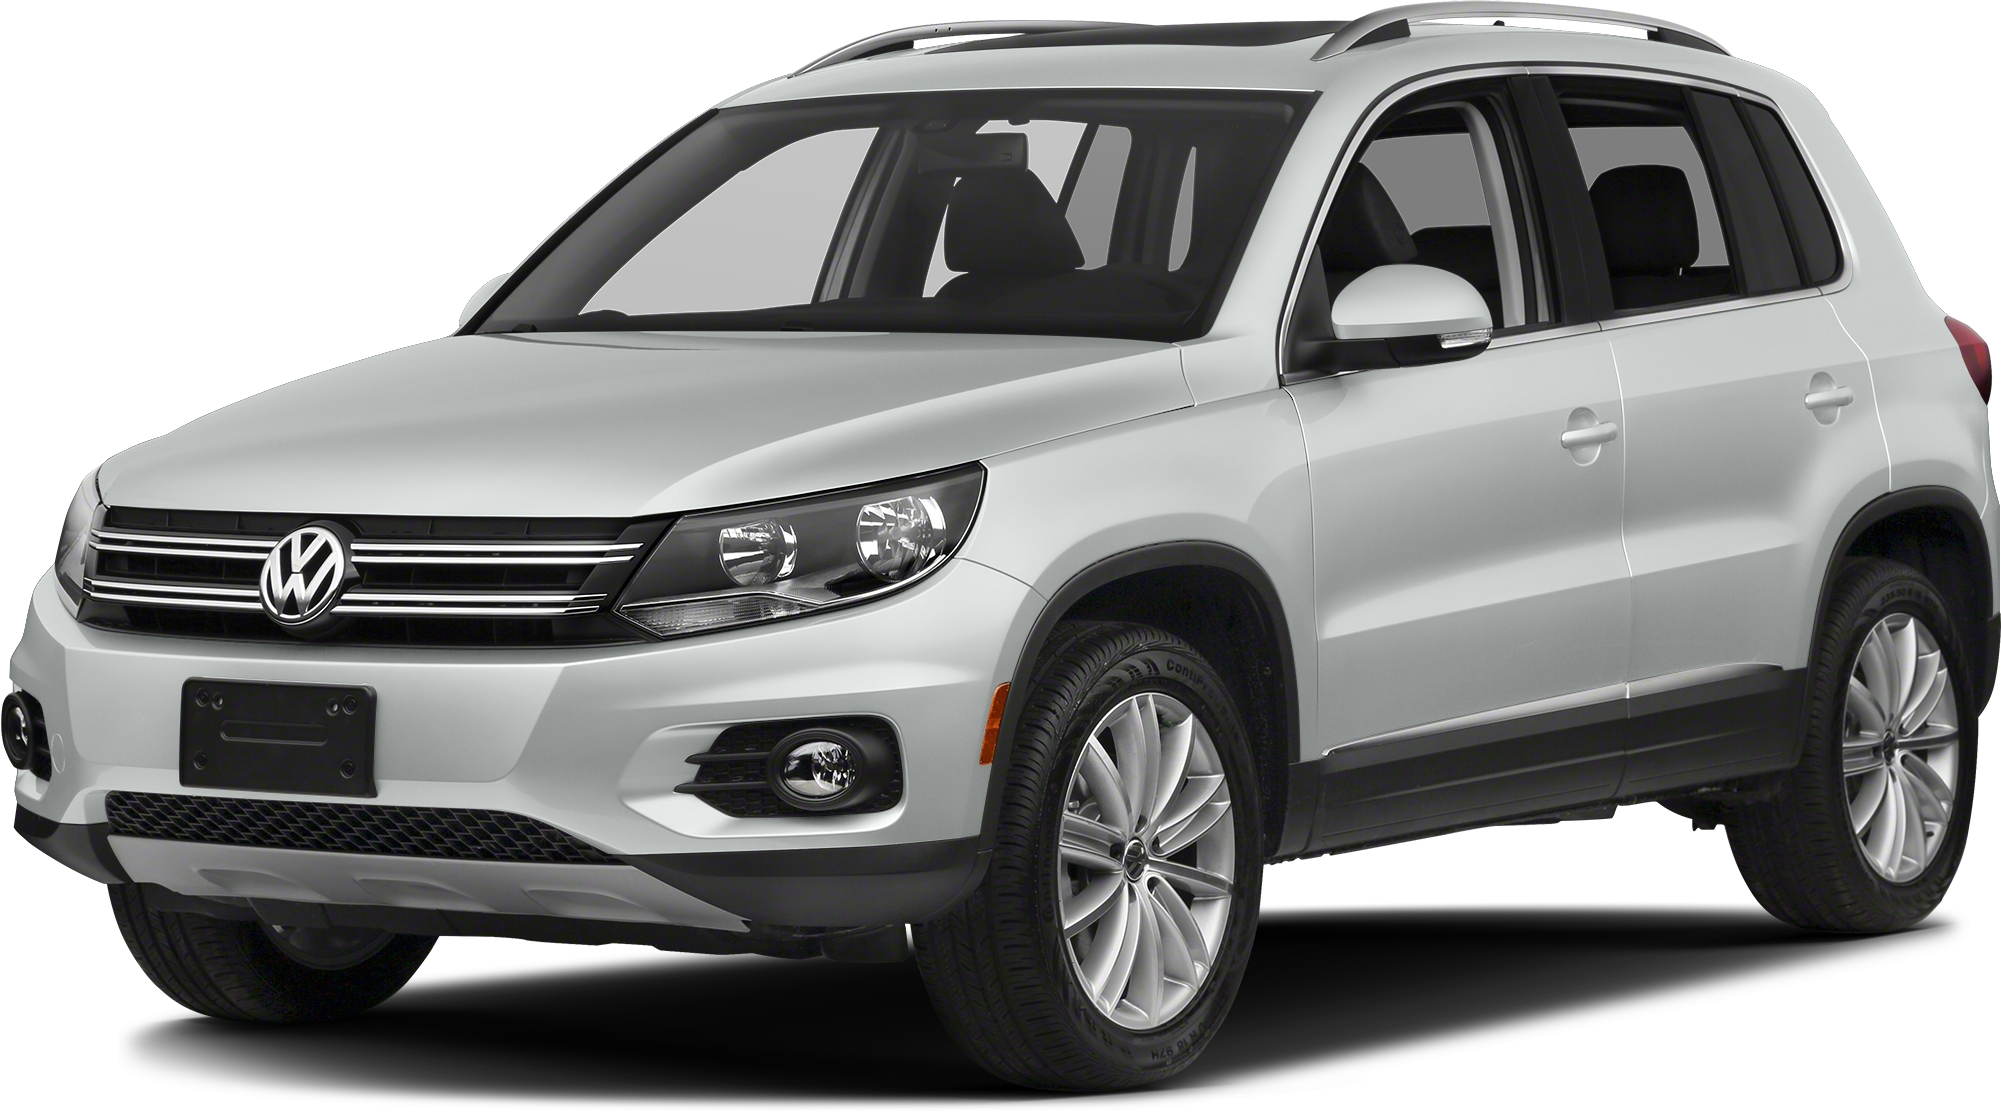 2017 volkswagen tiguan 2 0t wolfsburg edition woodland. Black Bedroom Furniture Sets. Home Design Ideas